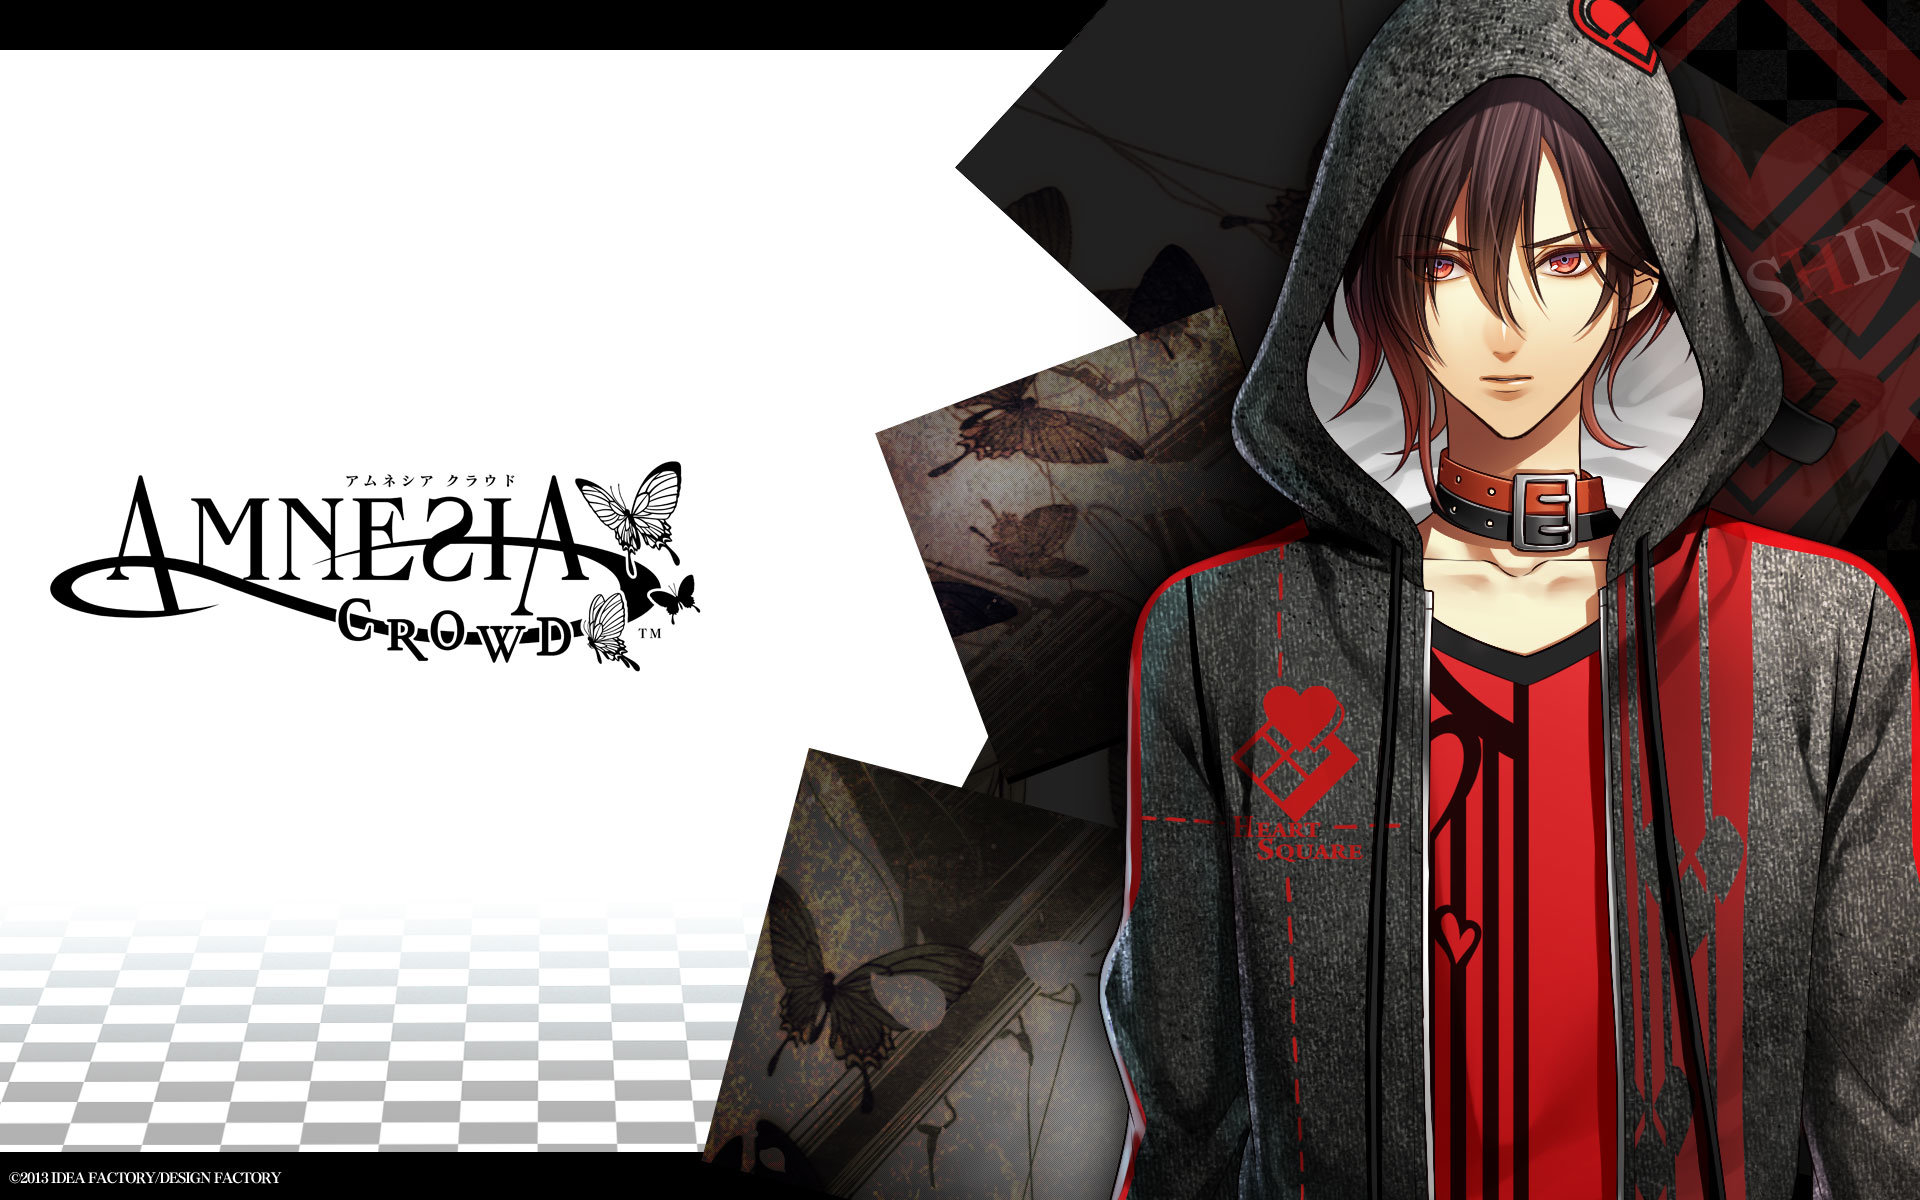 Free Amnesia high quality wallpaper ID:115268 for hd 1920x1200 PC